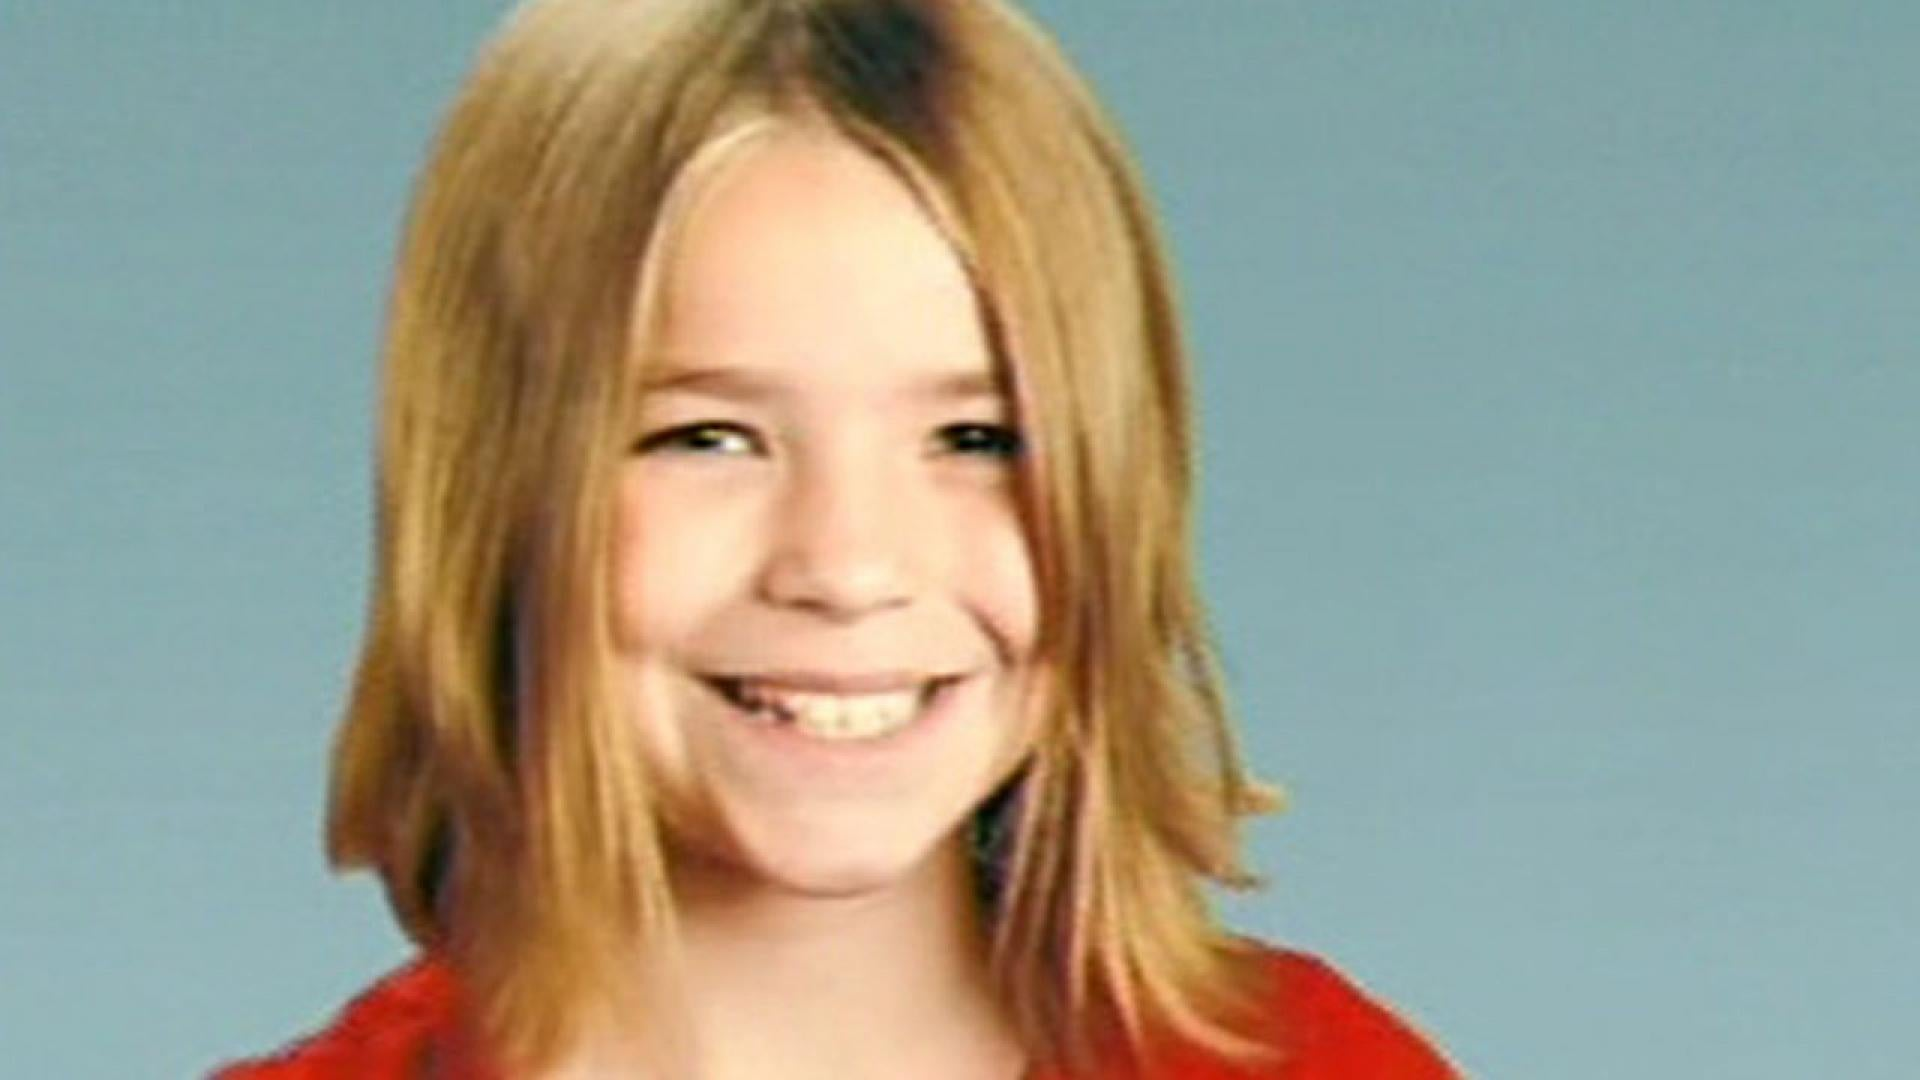 When she was just 10 years old, Lindsey Baum vanished while walking home from a nearby friend's house in McCleary on June 26, 2009.